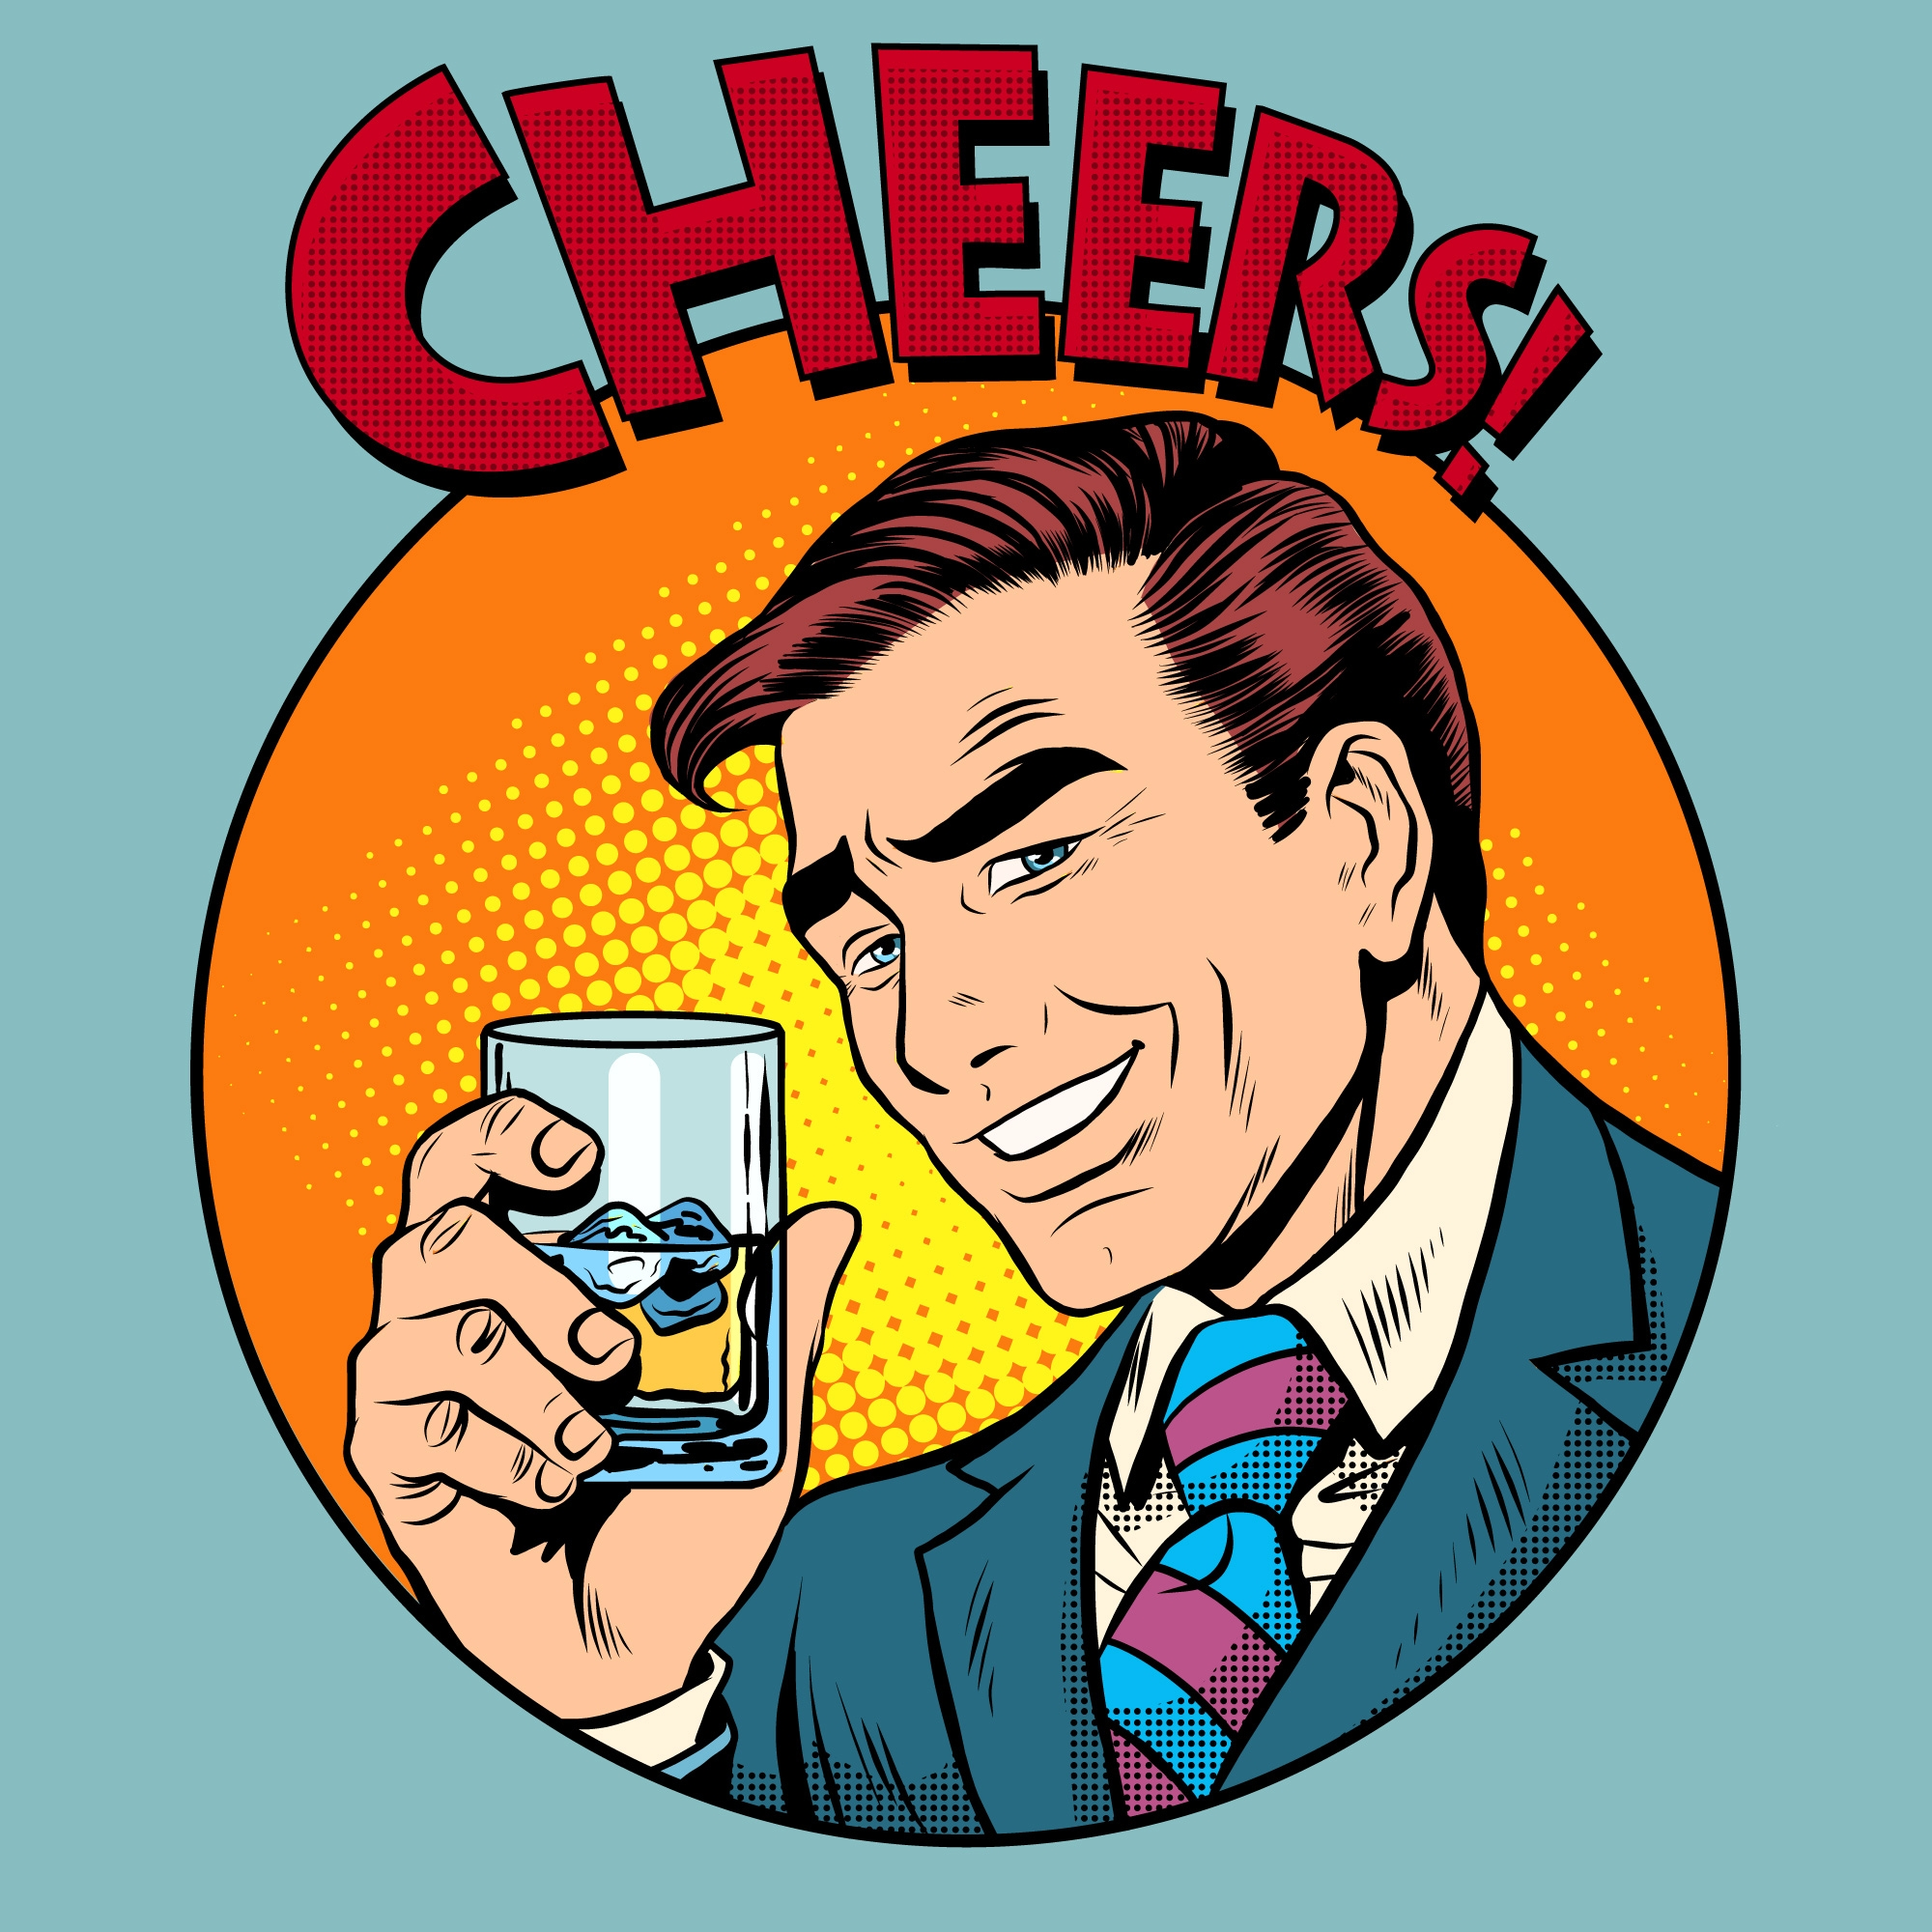 cheers - cartoon man holding a drink